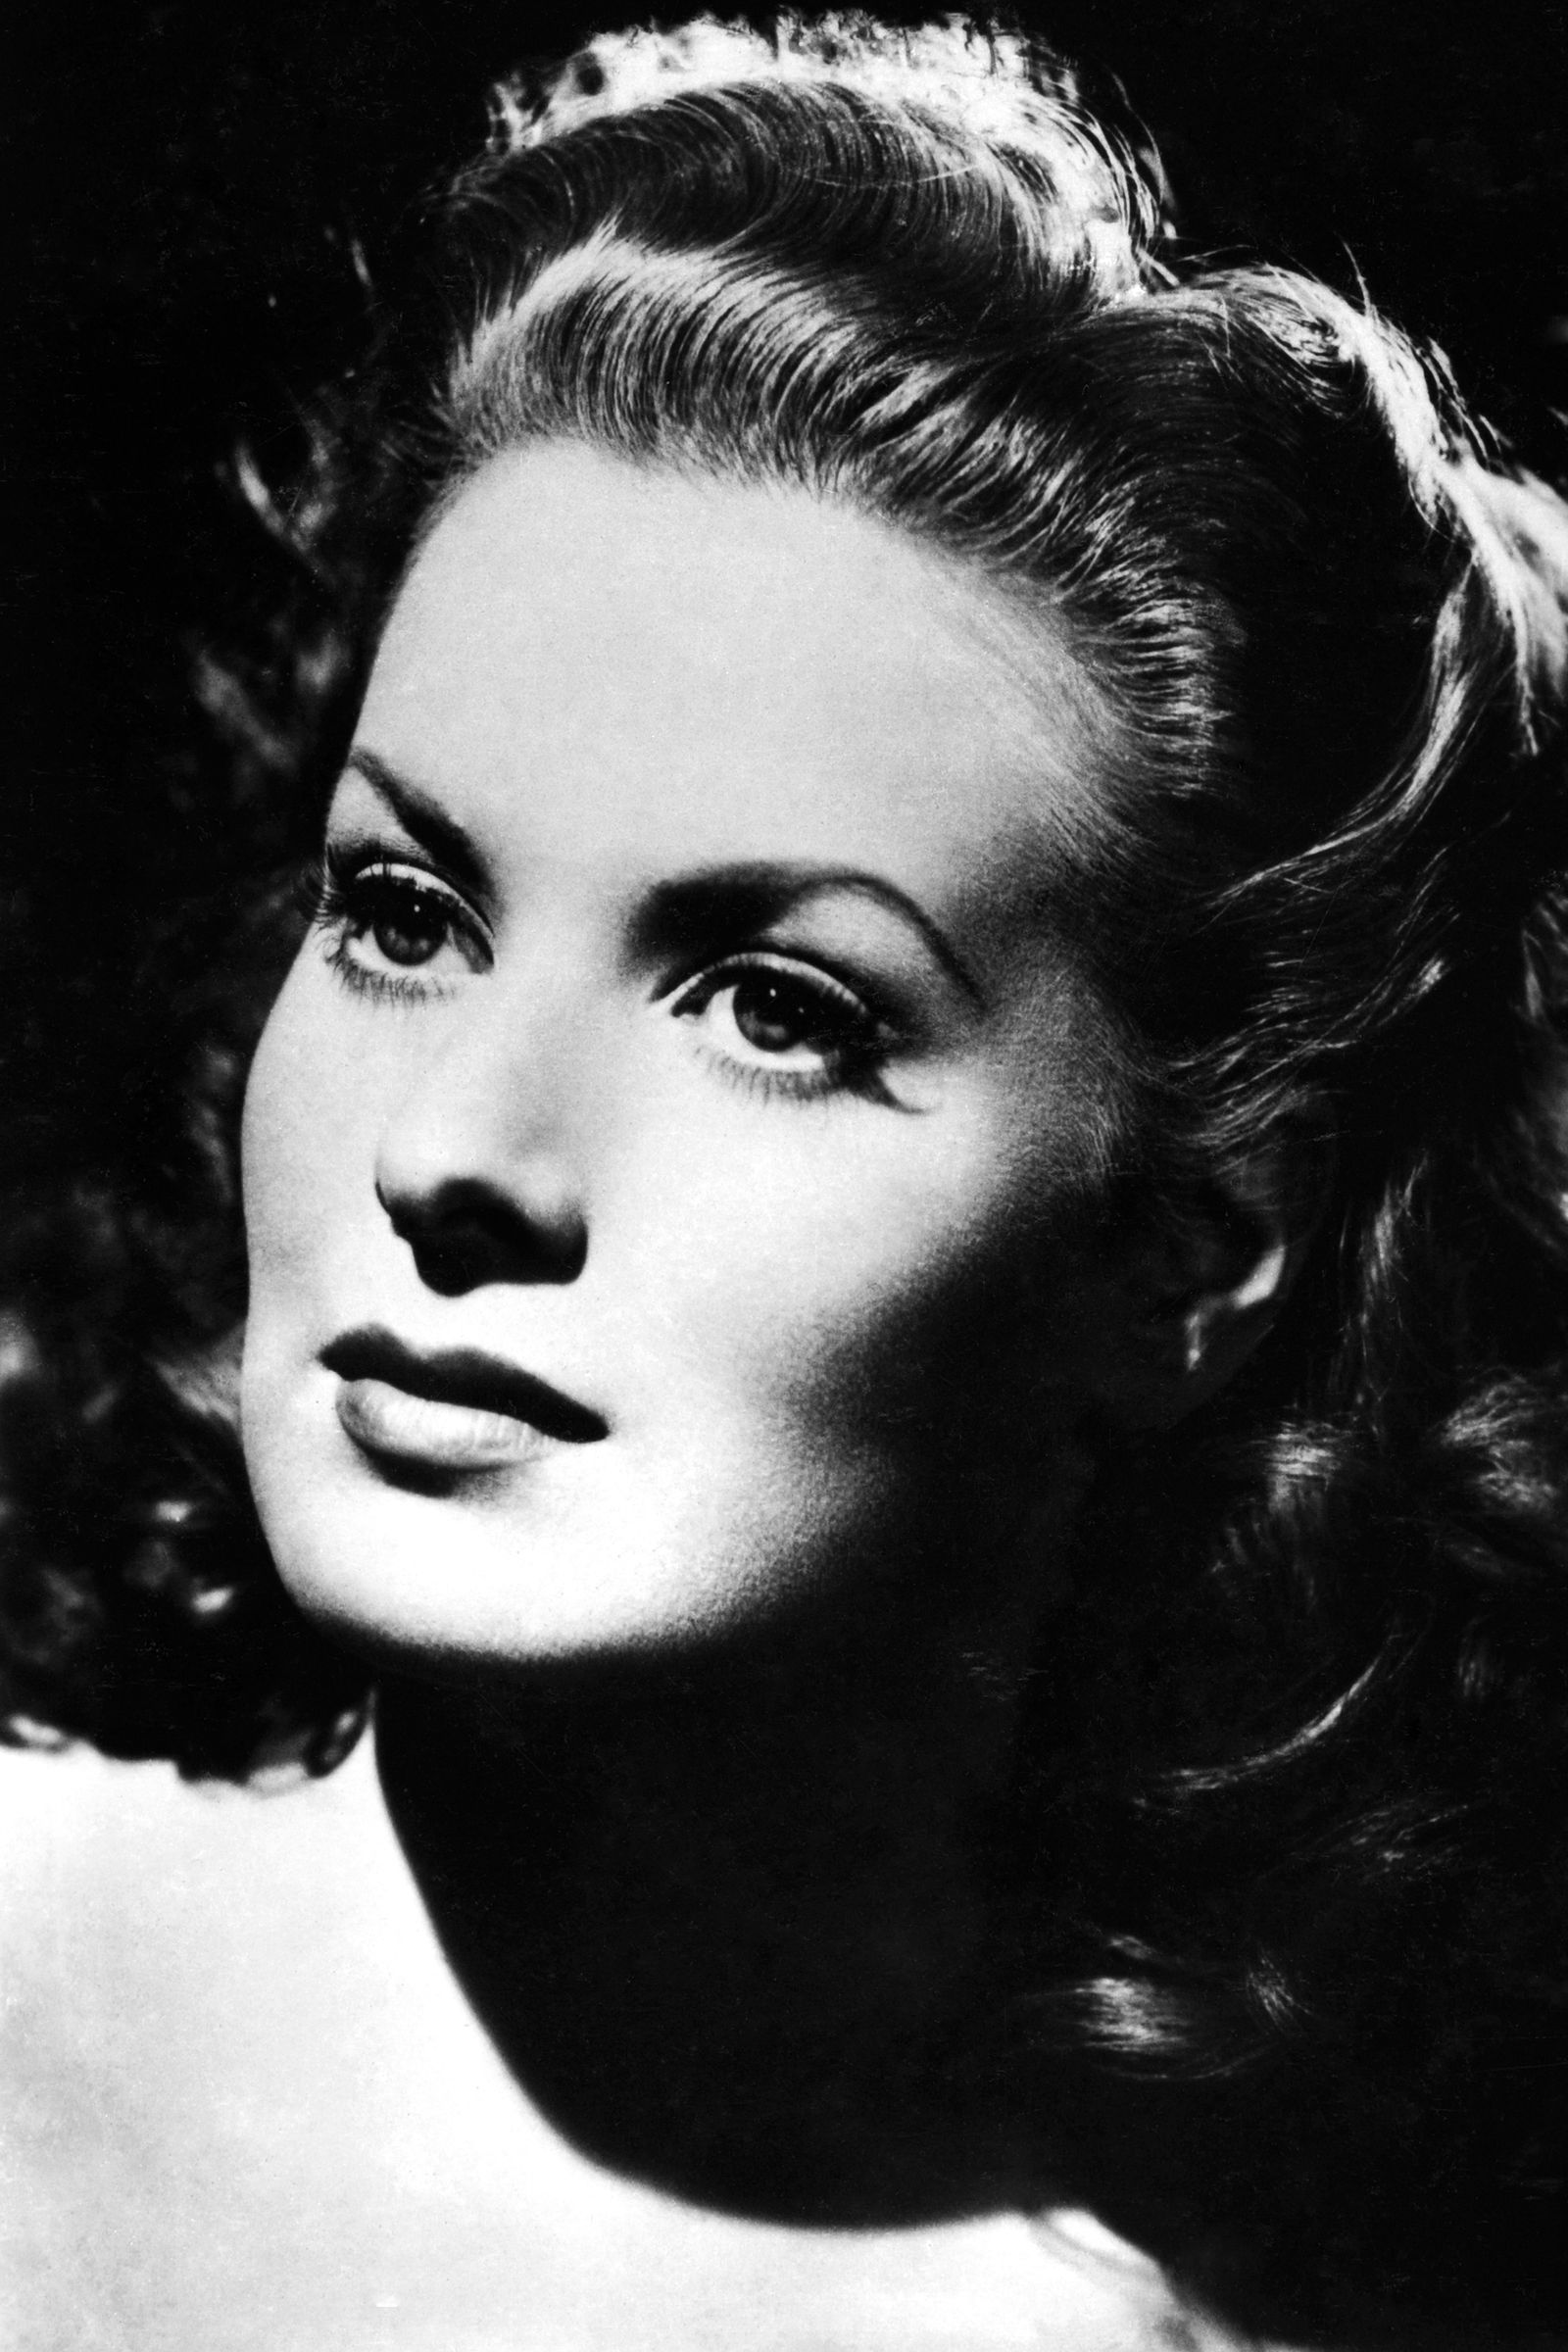 In Photos: Remembering Maureen O'Hara #hollywoodactor